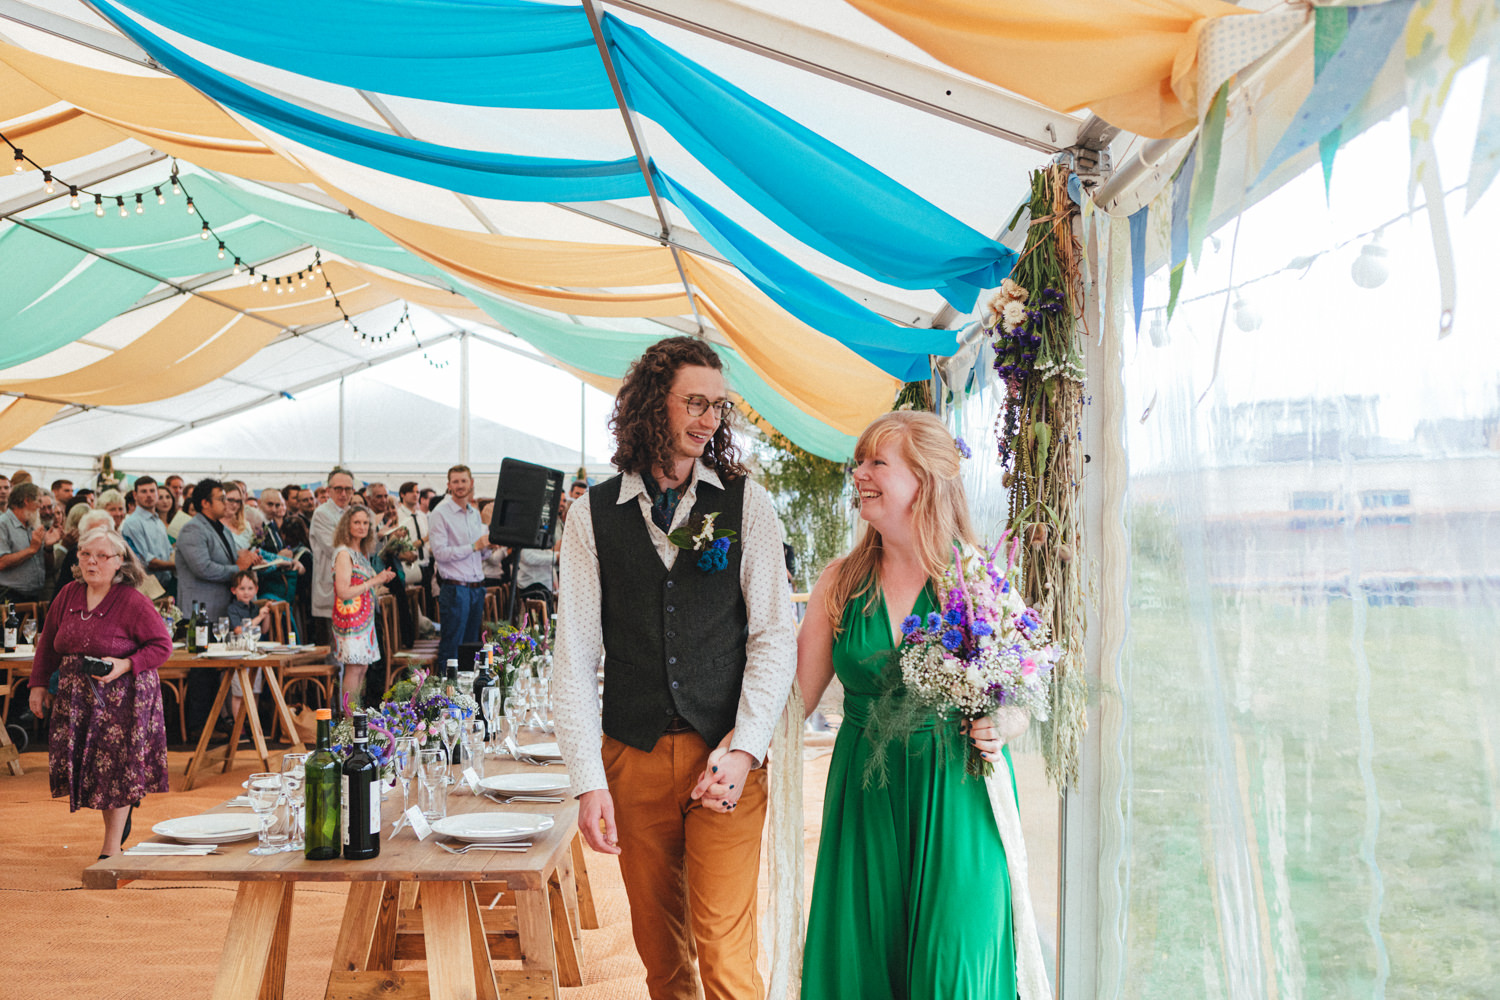 bride & groom, wedding ceremony, green wedding dress, eco wedding, outdoor wedding photography, marquee wedding, farm wedding